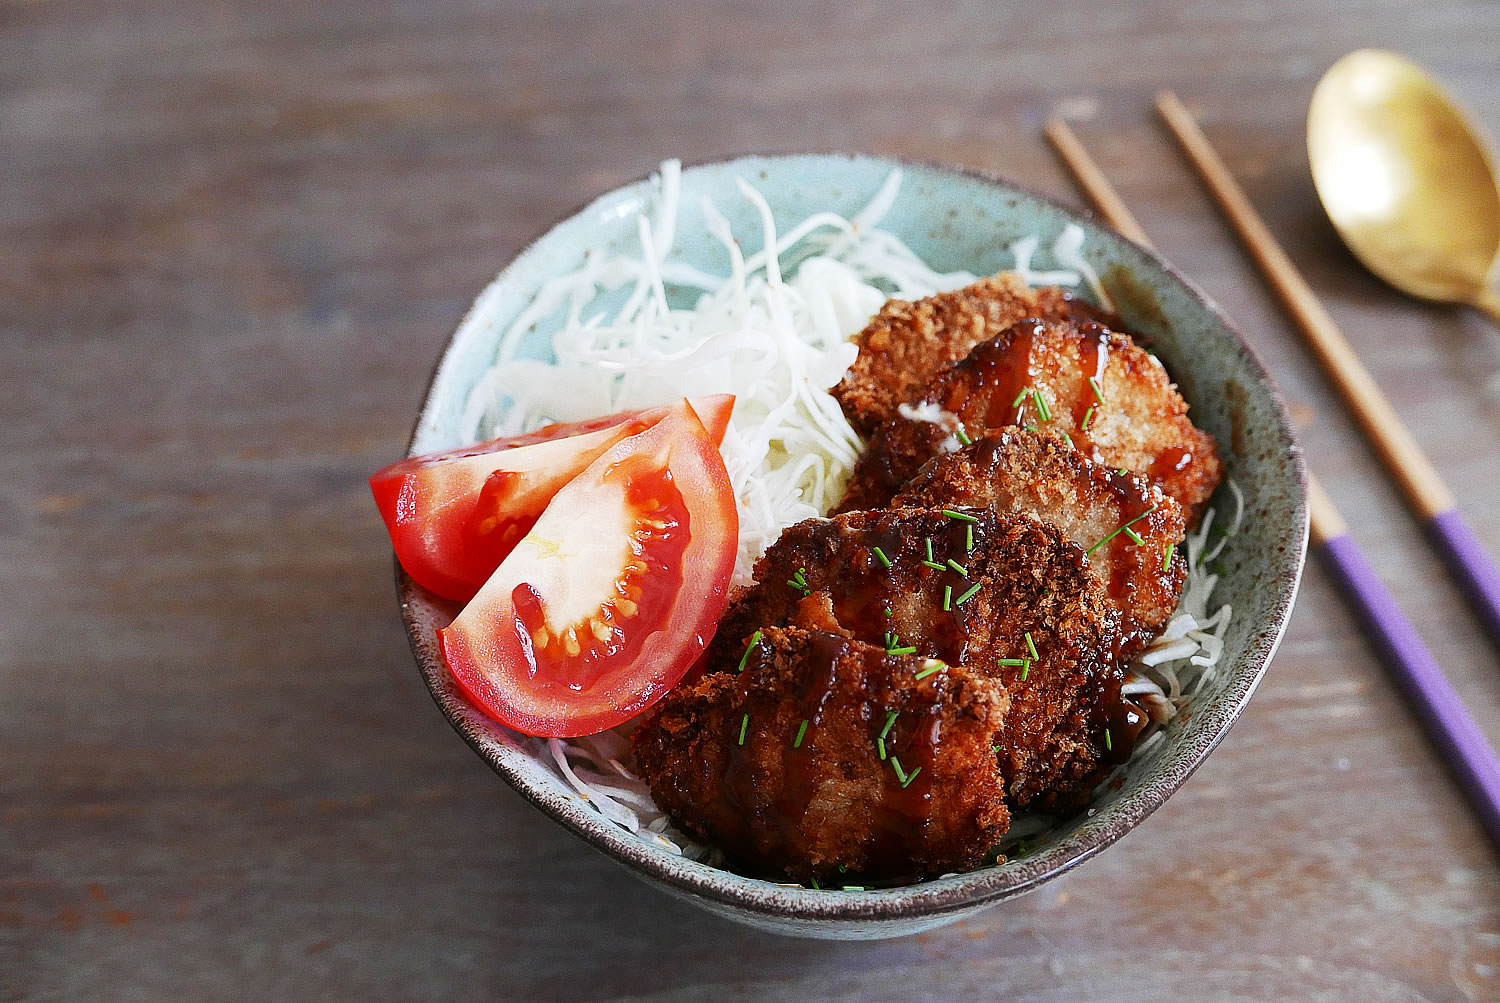 Katsudon bento - fried pork cutlet lunch box